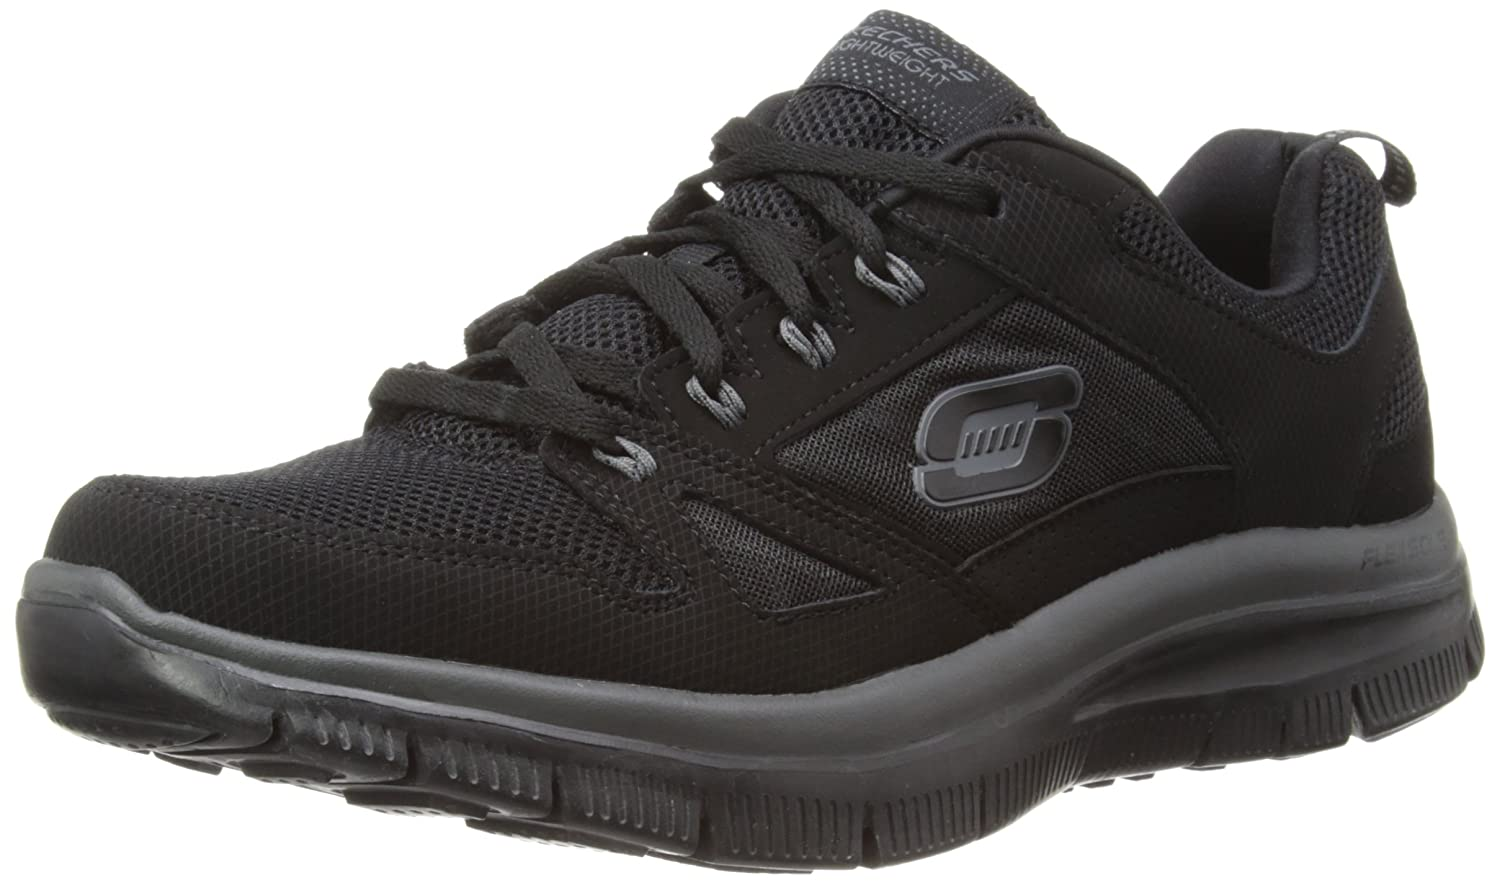 Skechers Sport Men's Flex Advantage Memory Foam Training